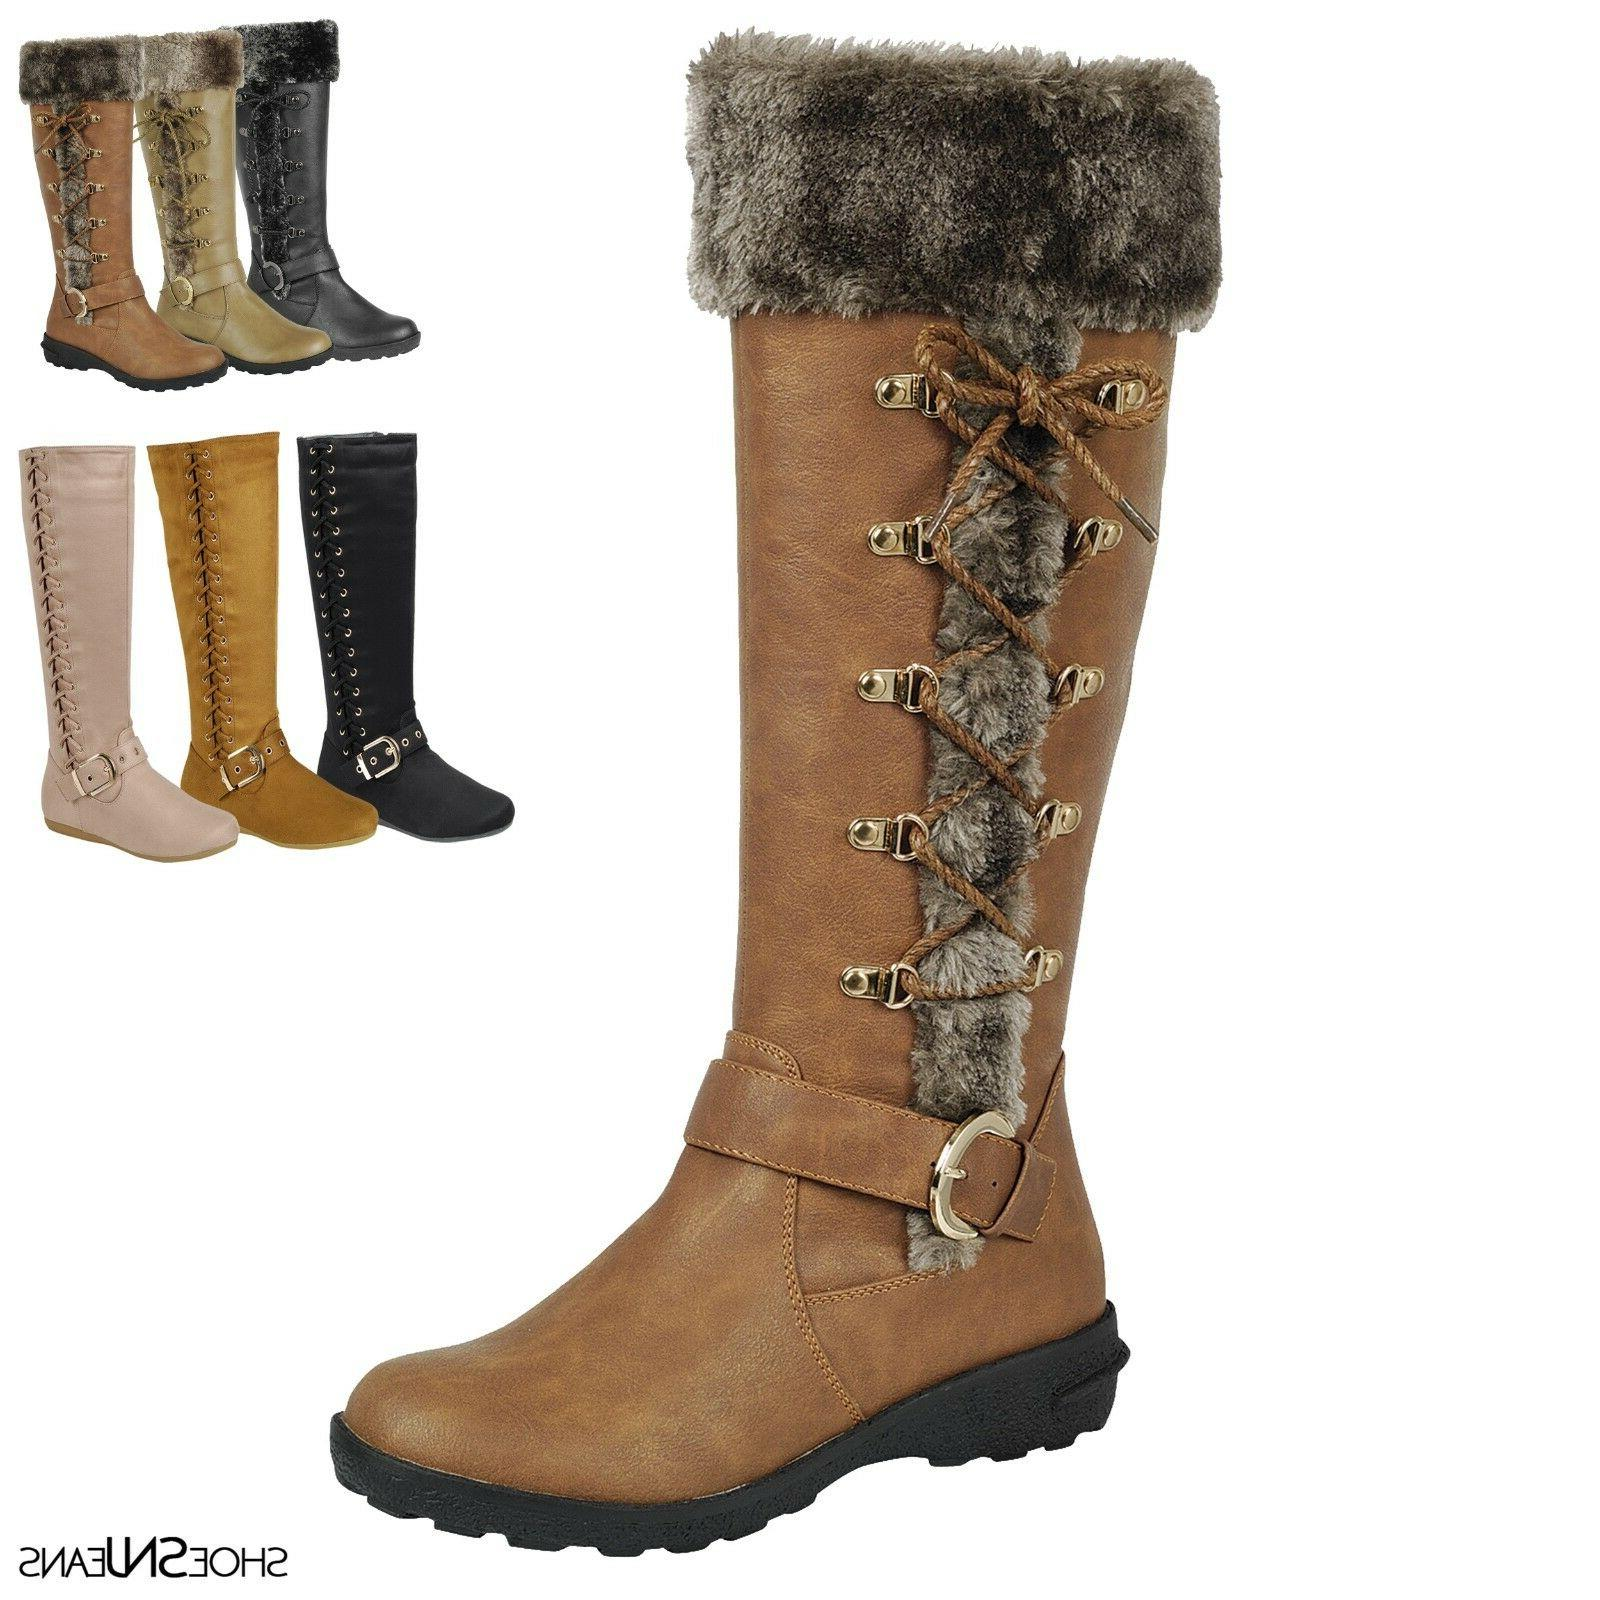 New Women Fashion Lace Up Fur Mid Calf Winter Snow Buckle Bo